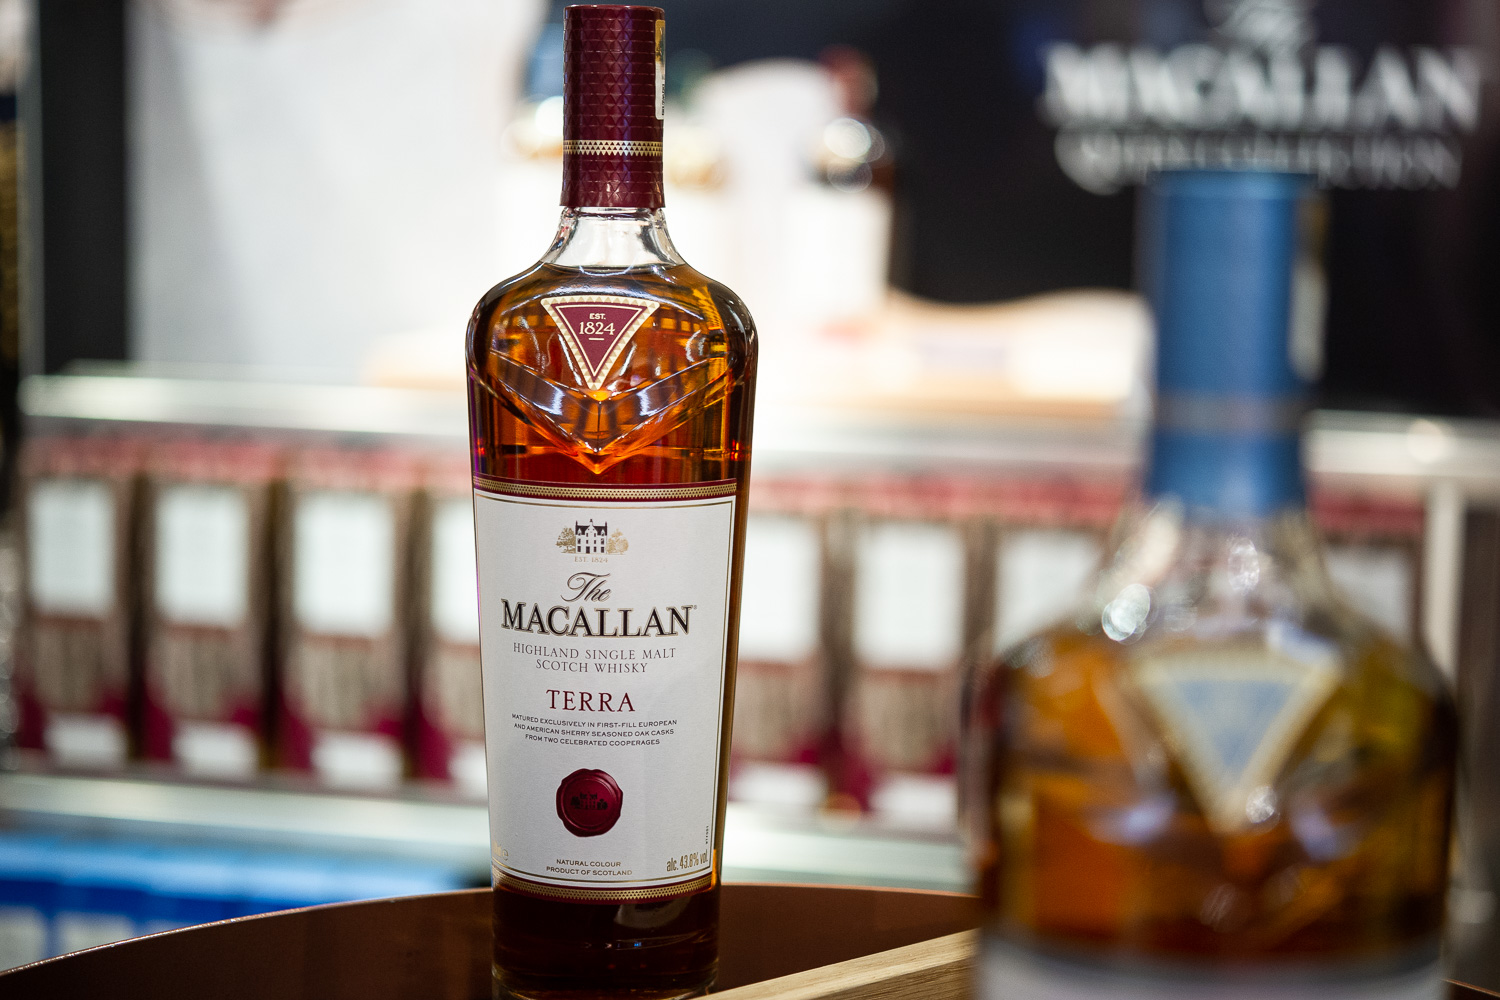 Pop-up store de la nouvelle gamme de whisky Macallan Quest Collection du groupe Edrington  Terminal LSM4 Roissy Charles de Gaulle